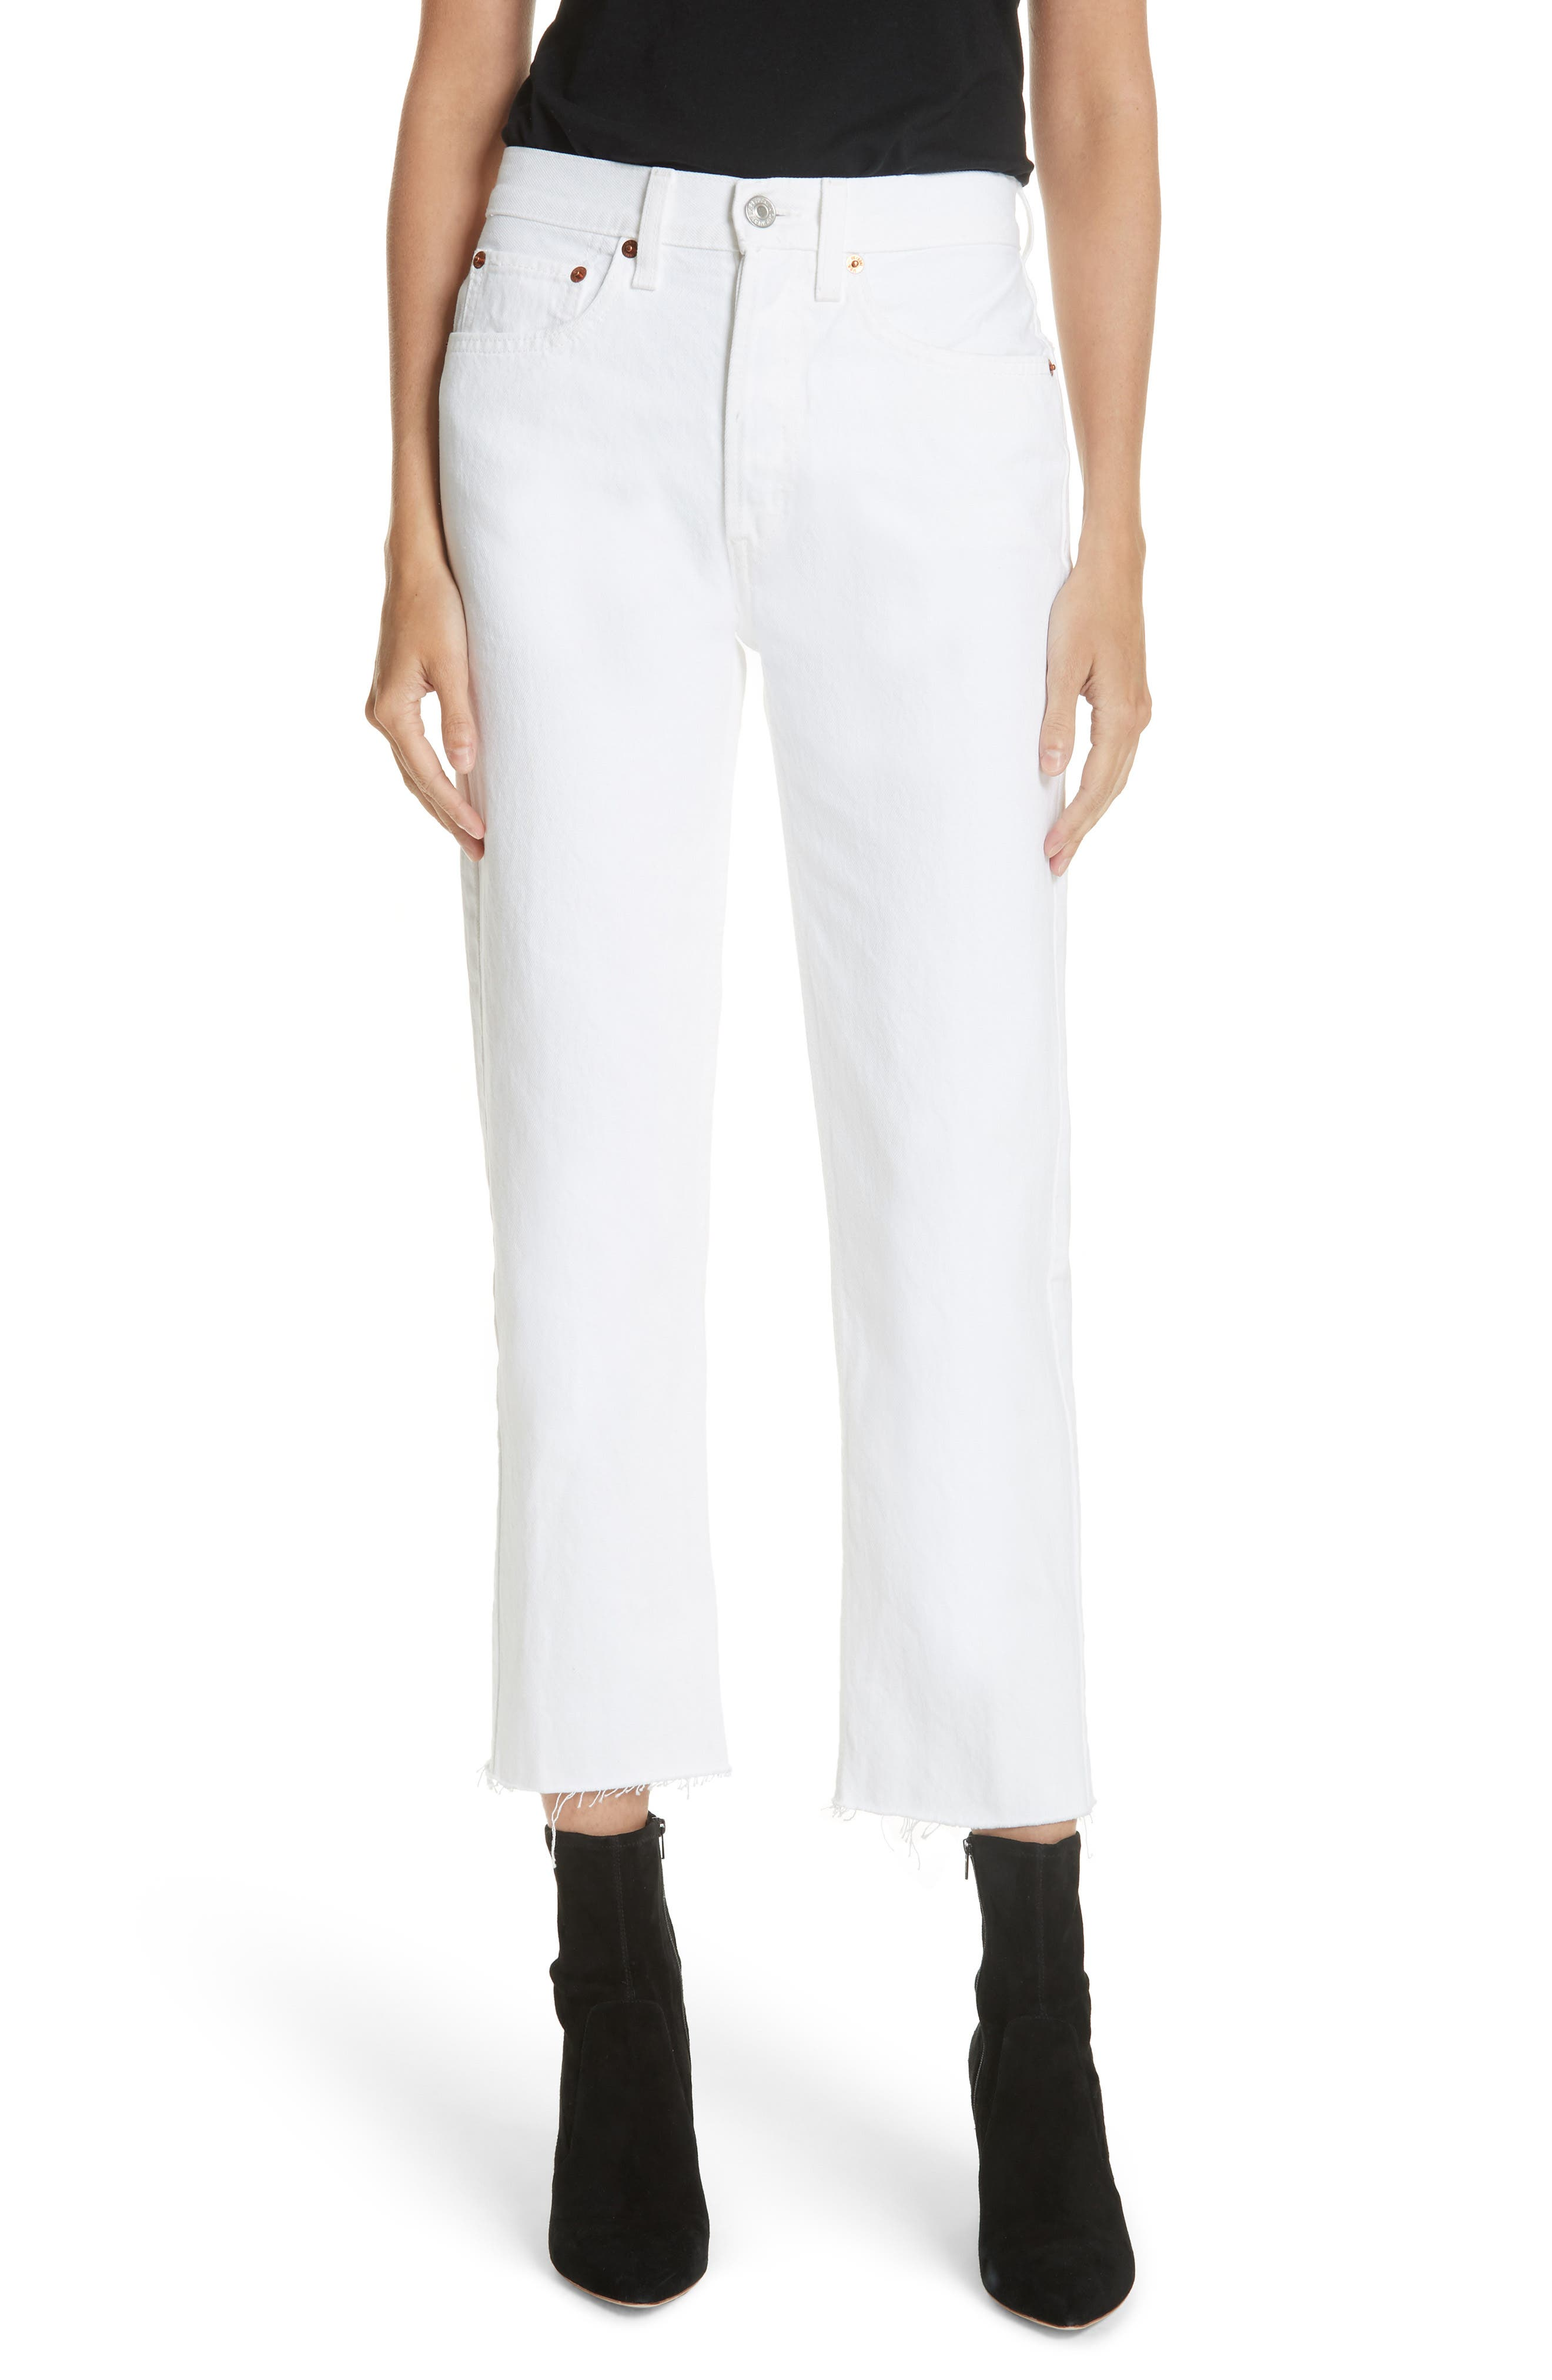 Originals High Waist Stove Pipe Jeans,                             Main thumbnail 1, color,                             WHITE